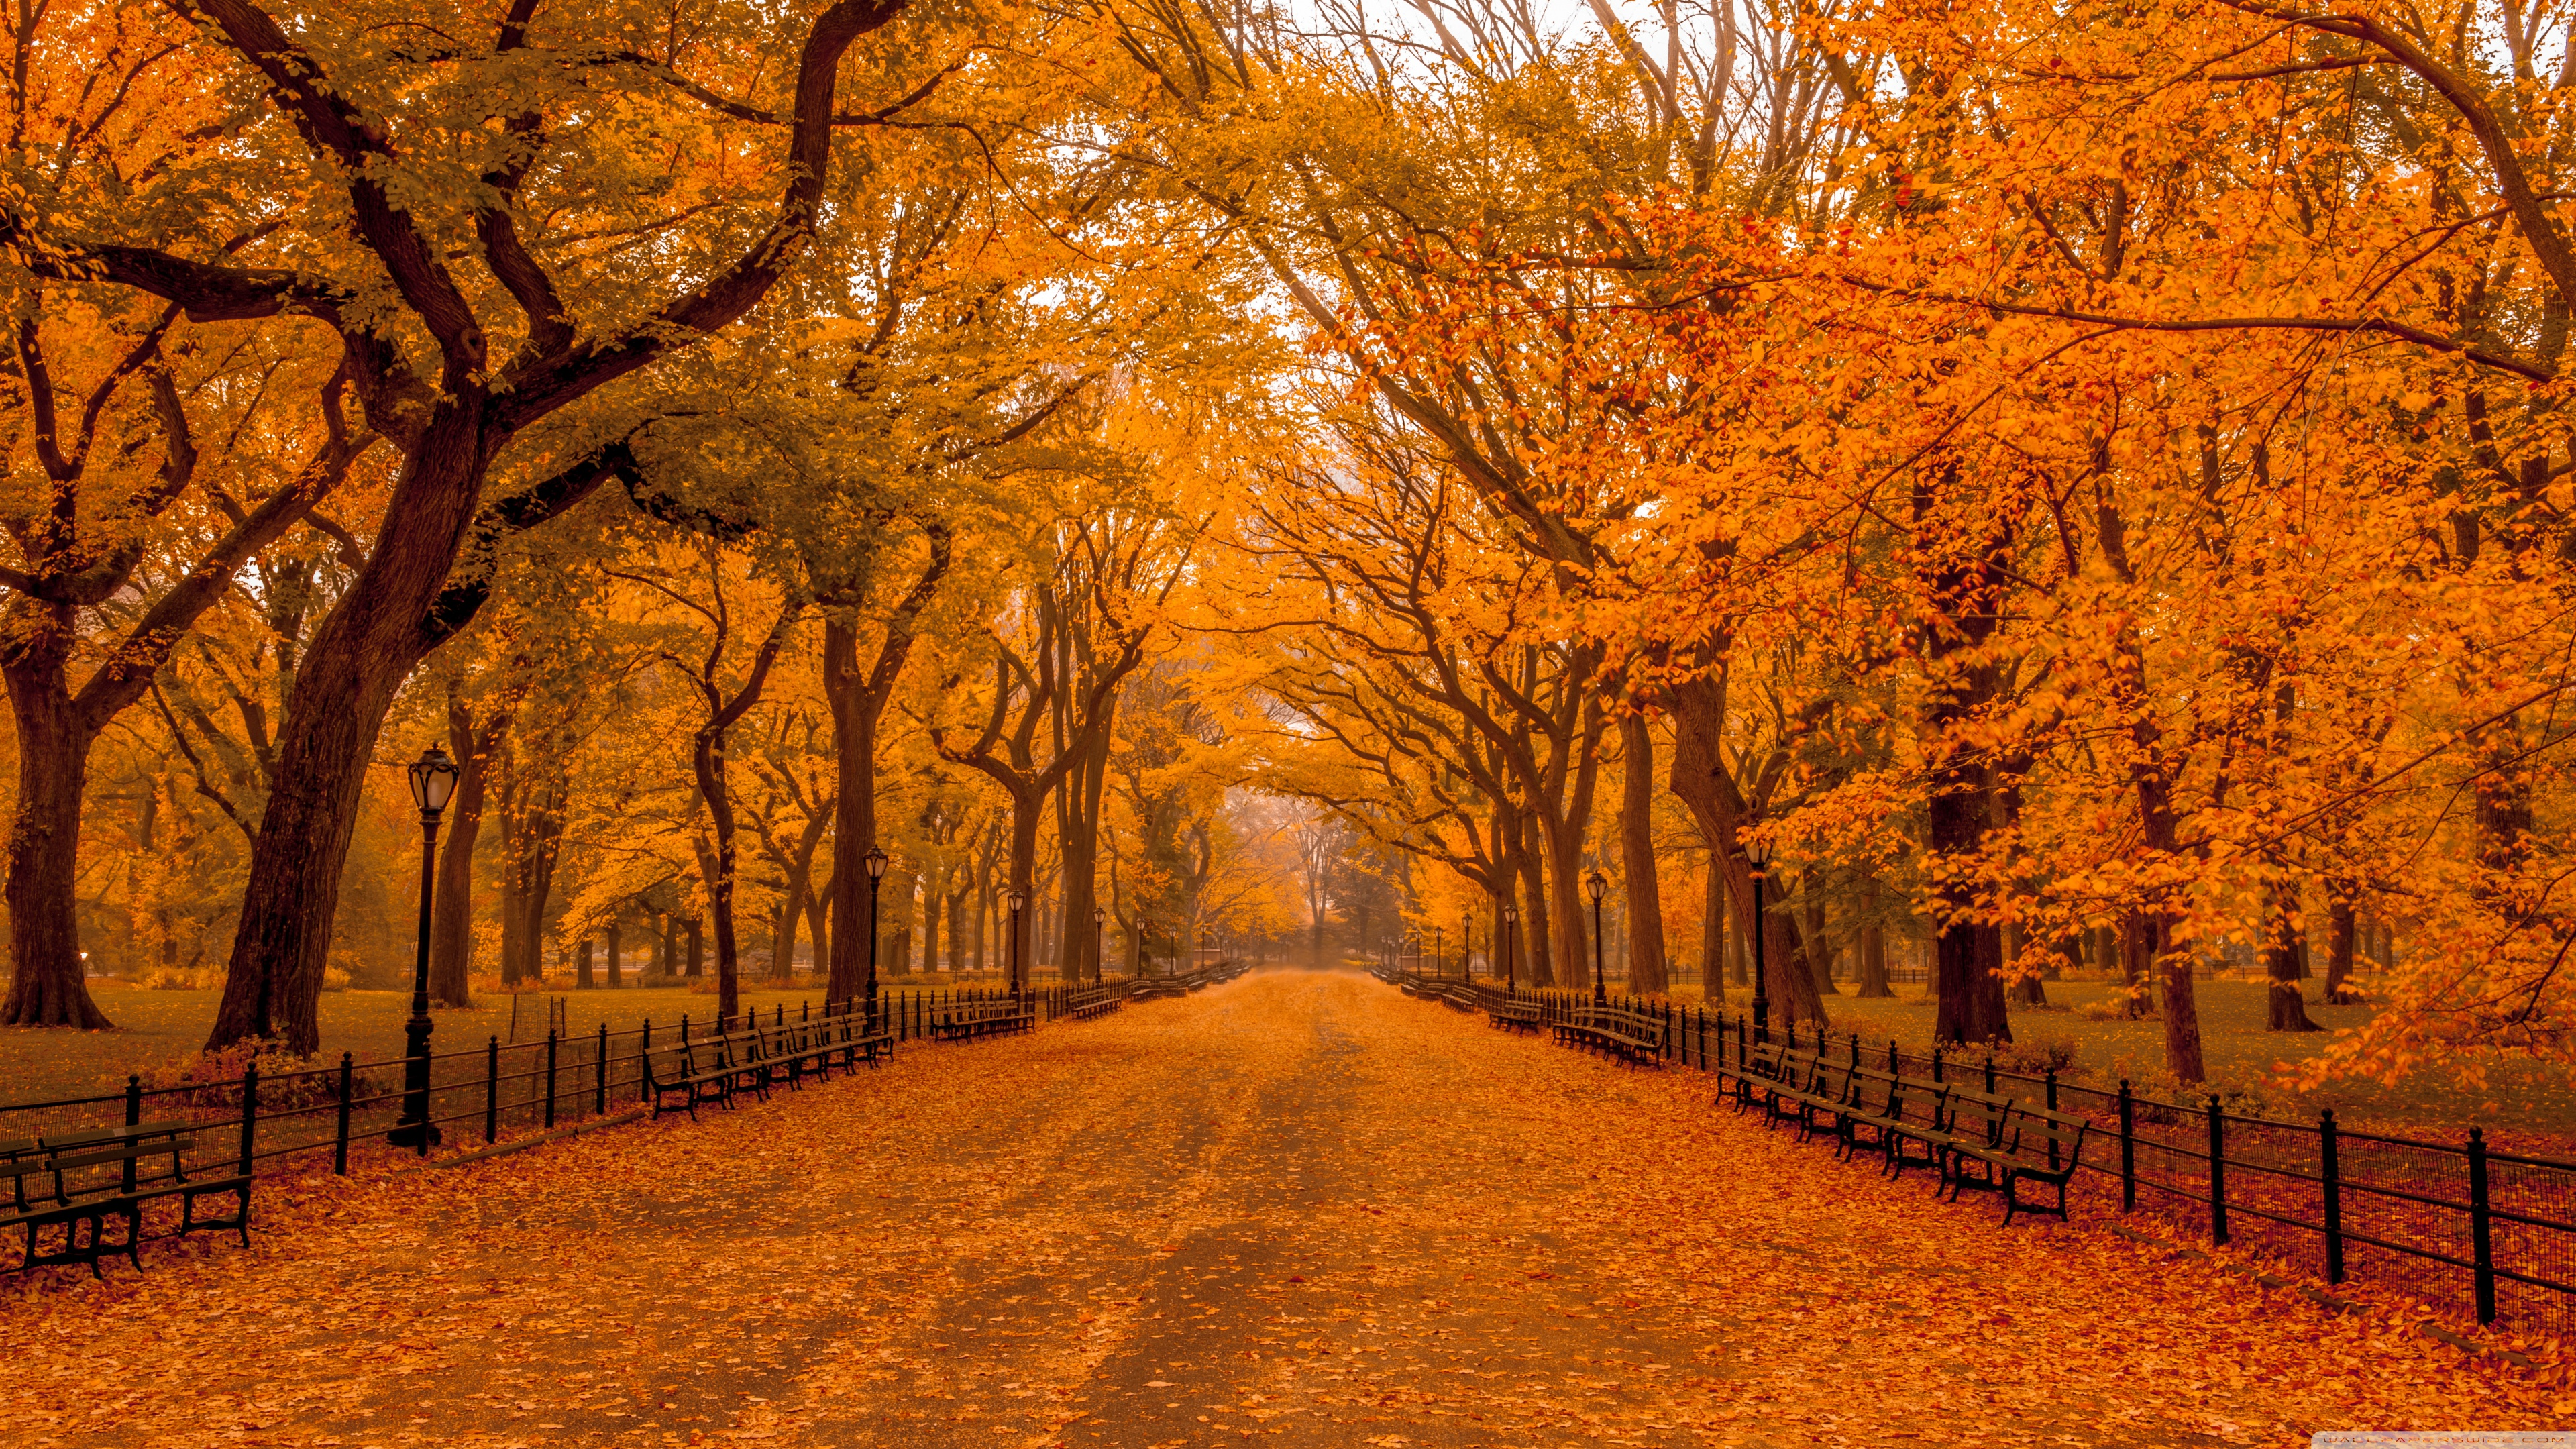 Autumn Wallpaper 4k Posted By Ryan Anderson